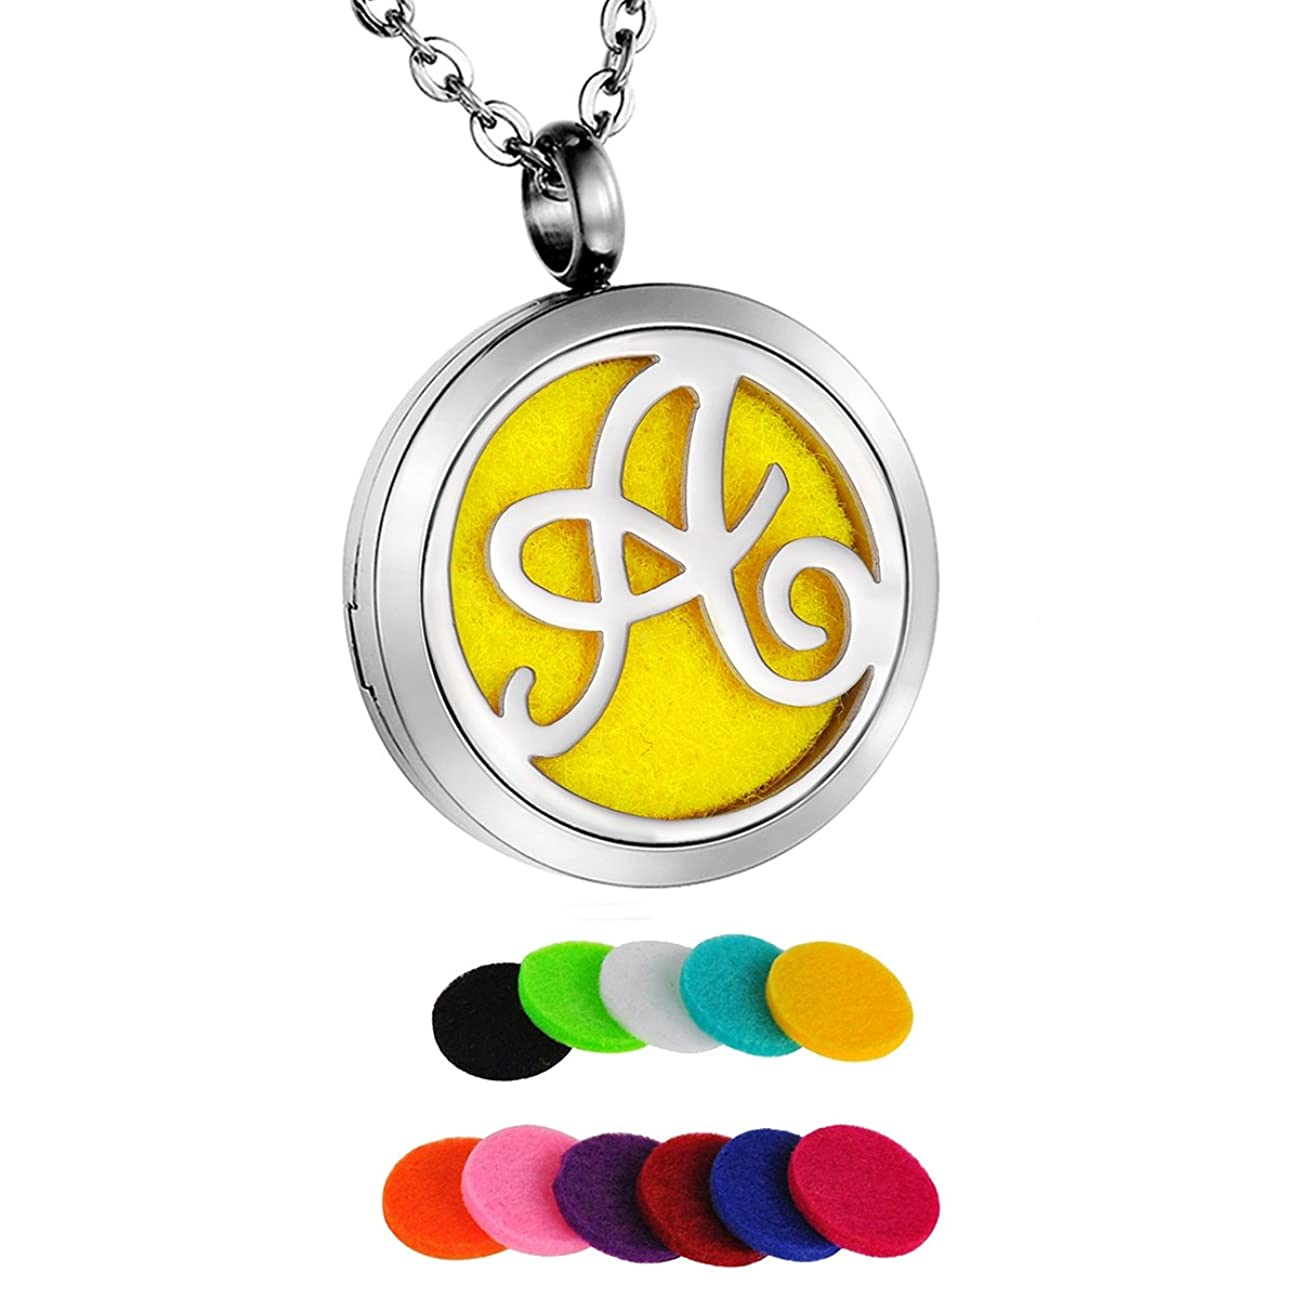 HooAMI Monogram Aromatherapy Essential Oil Diffuser Necklace A to Z Letter Locket Pendant with 24